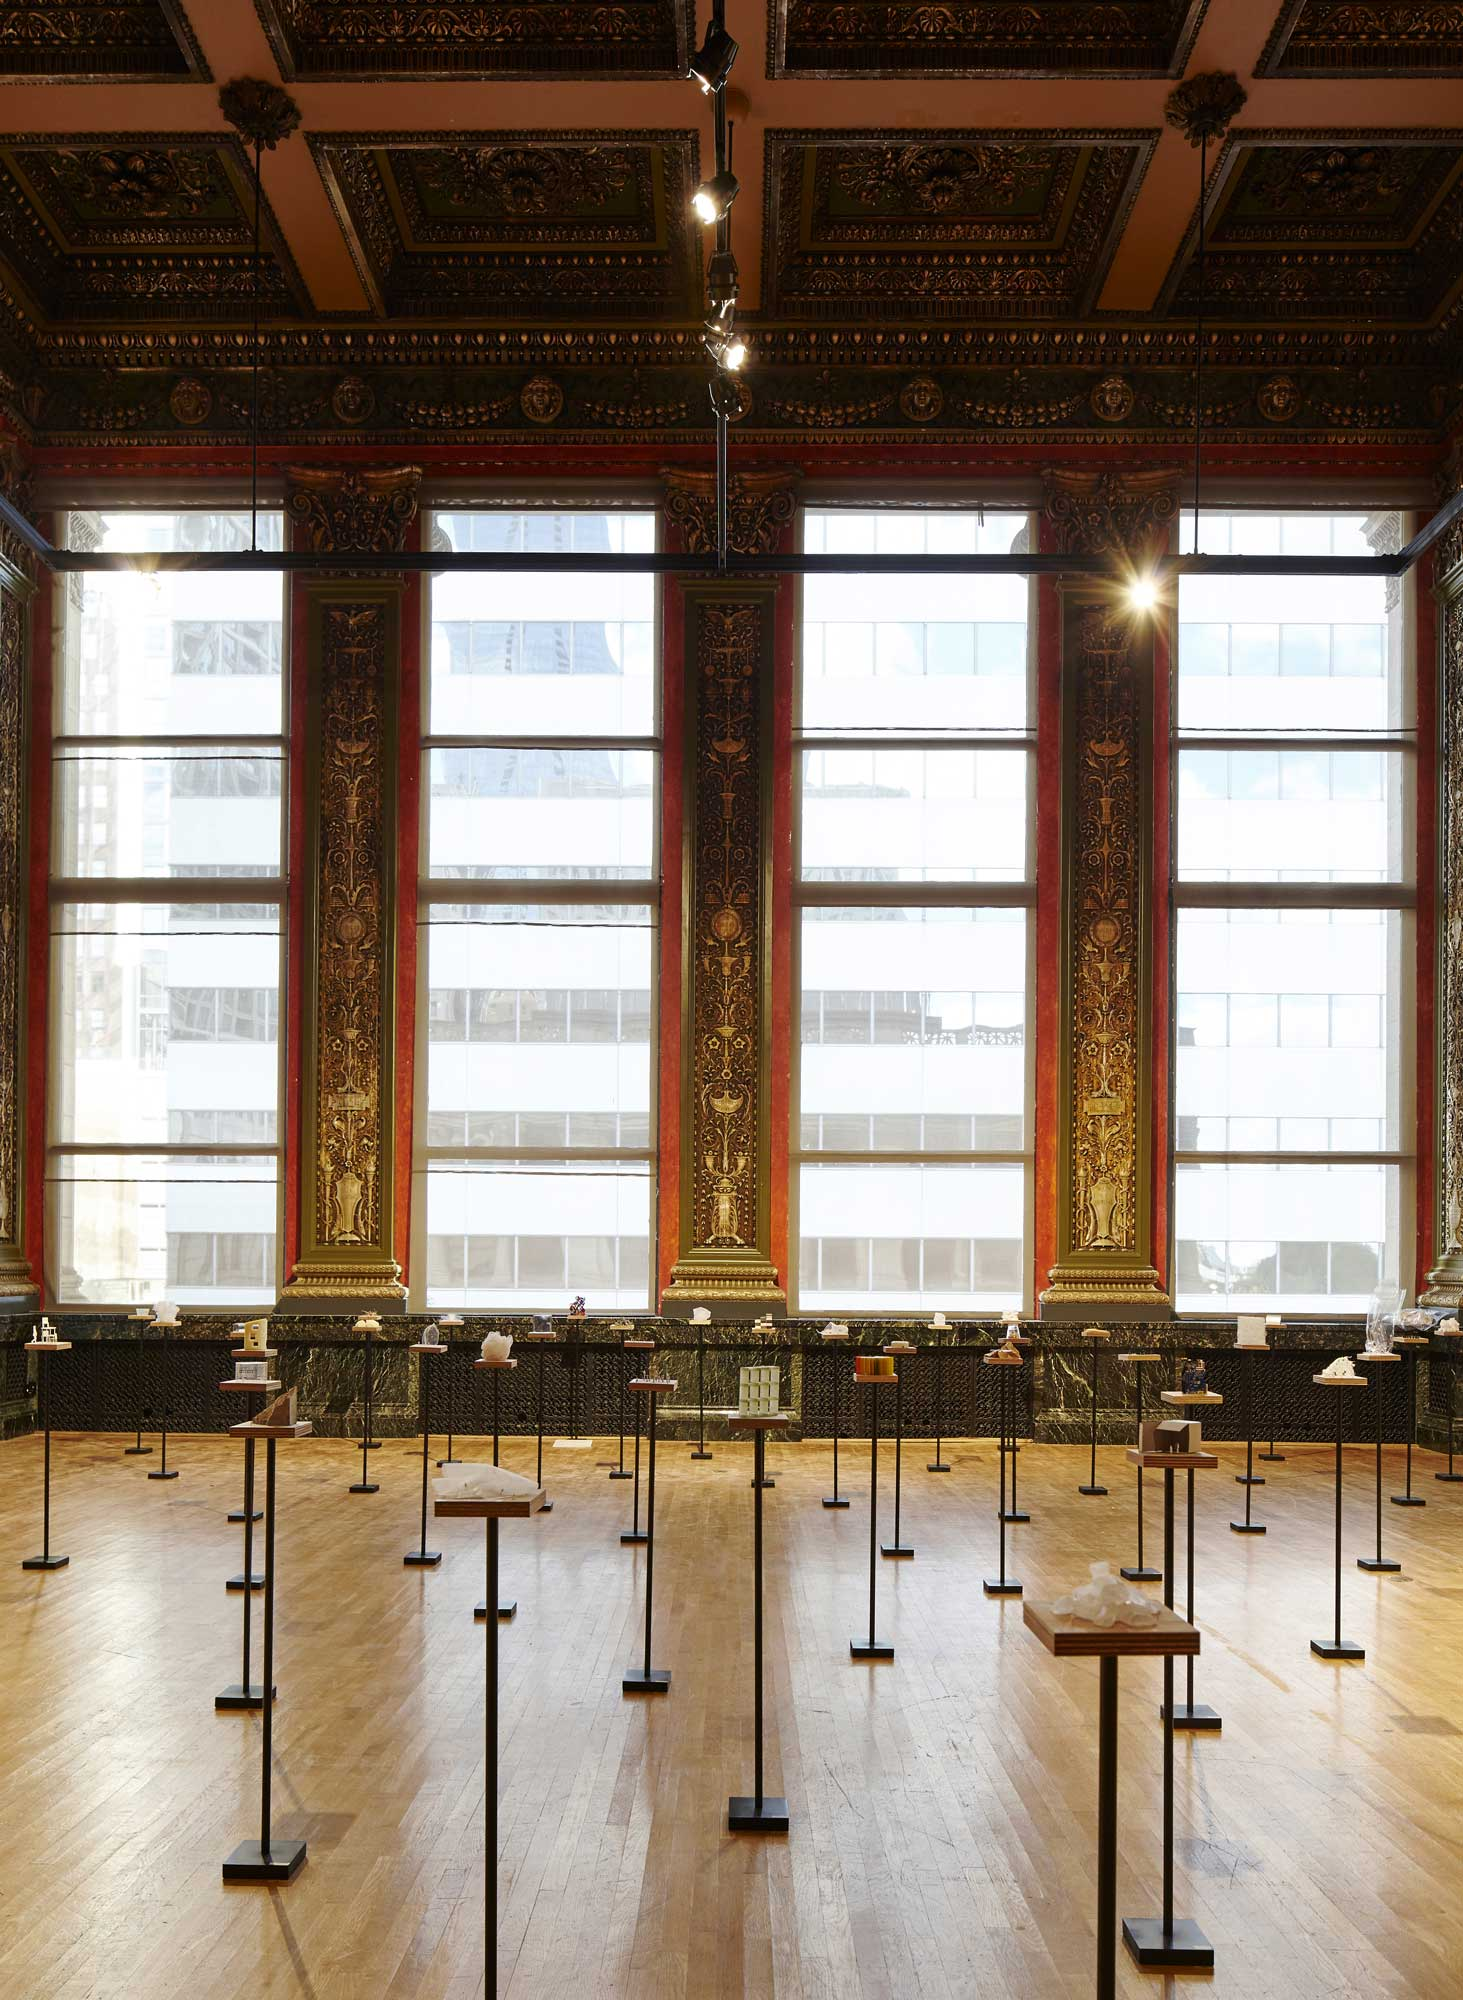 Sou Fujimoto - Architecture is Everywhere, fot. Tom Harris, Hedrich Blessing, źródło: http://chicagoarchitecturebiennial.org